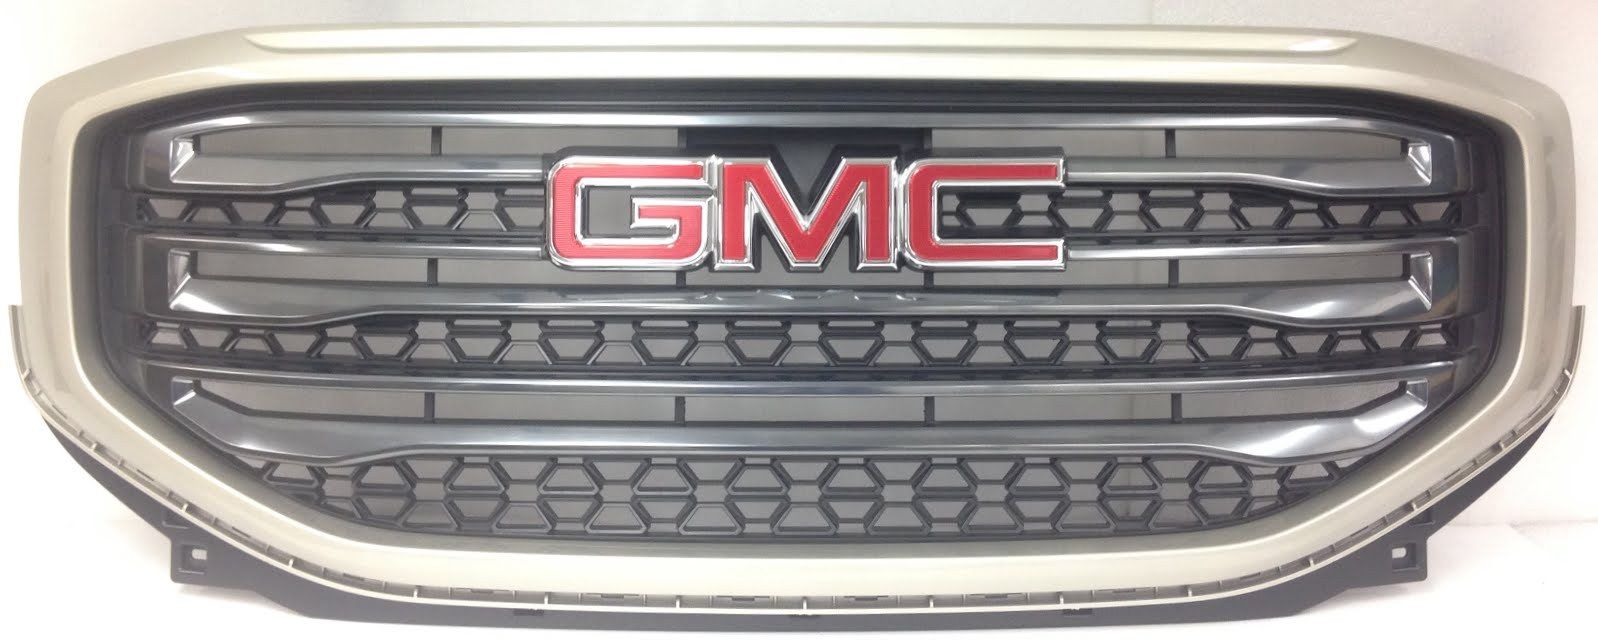 Gmc Acadia 2017 Painted Front Grill New